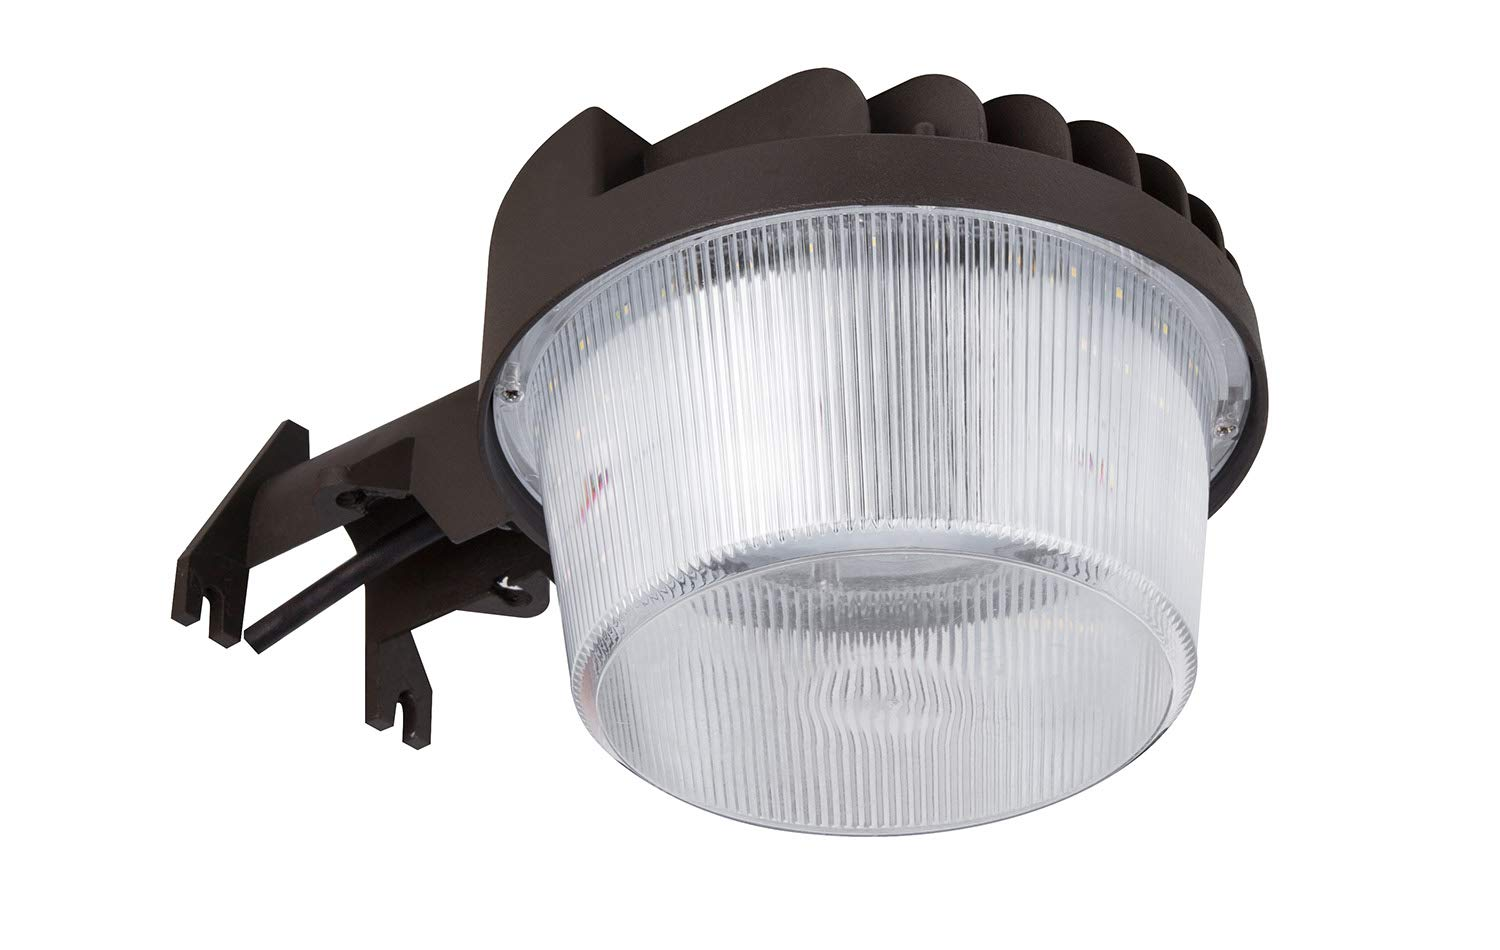 NEOX LED Area Light 40 Watts Dusk to Dawn Photocell Included, Yard Light or Barn Light, 3699 Lumens, 3000K (Warm White), ETL and DLC Listed, mounting arm not Included